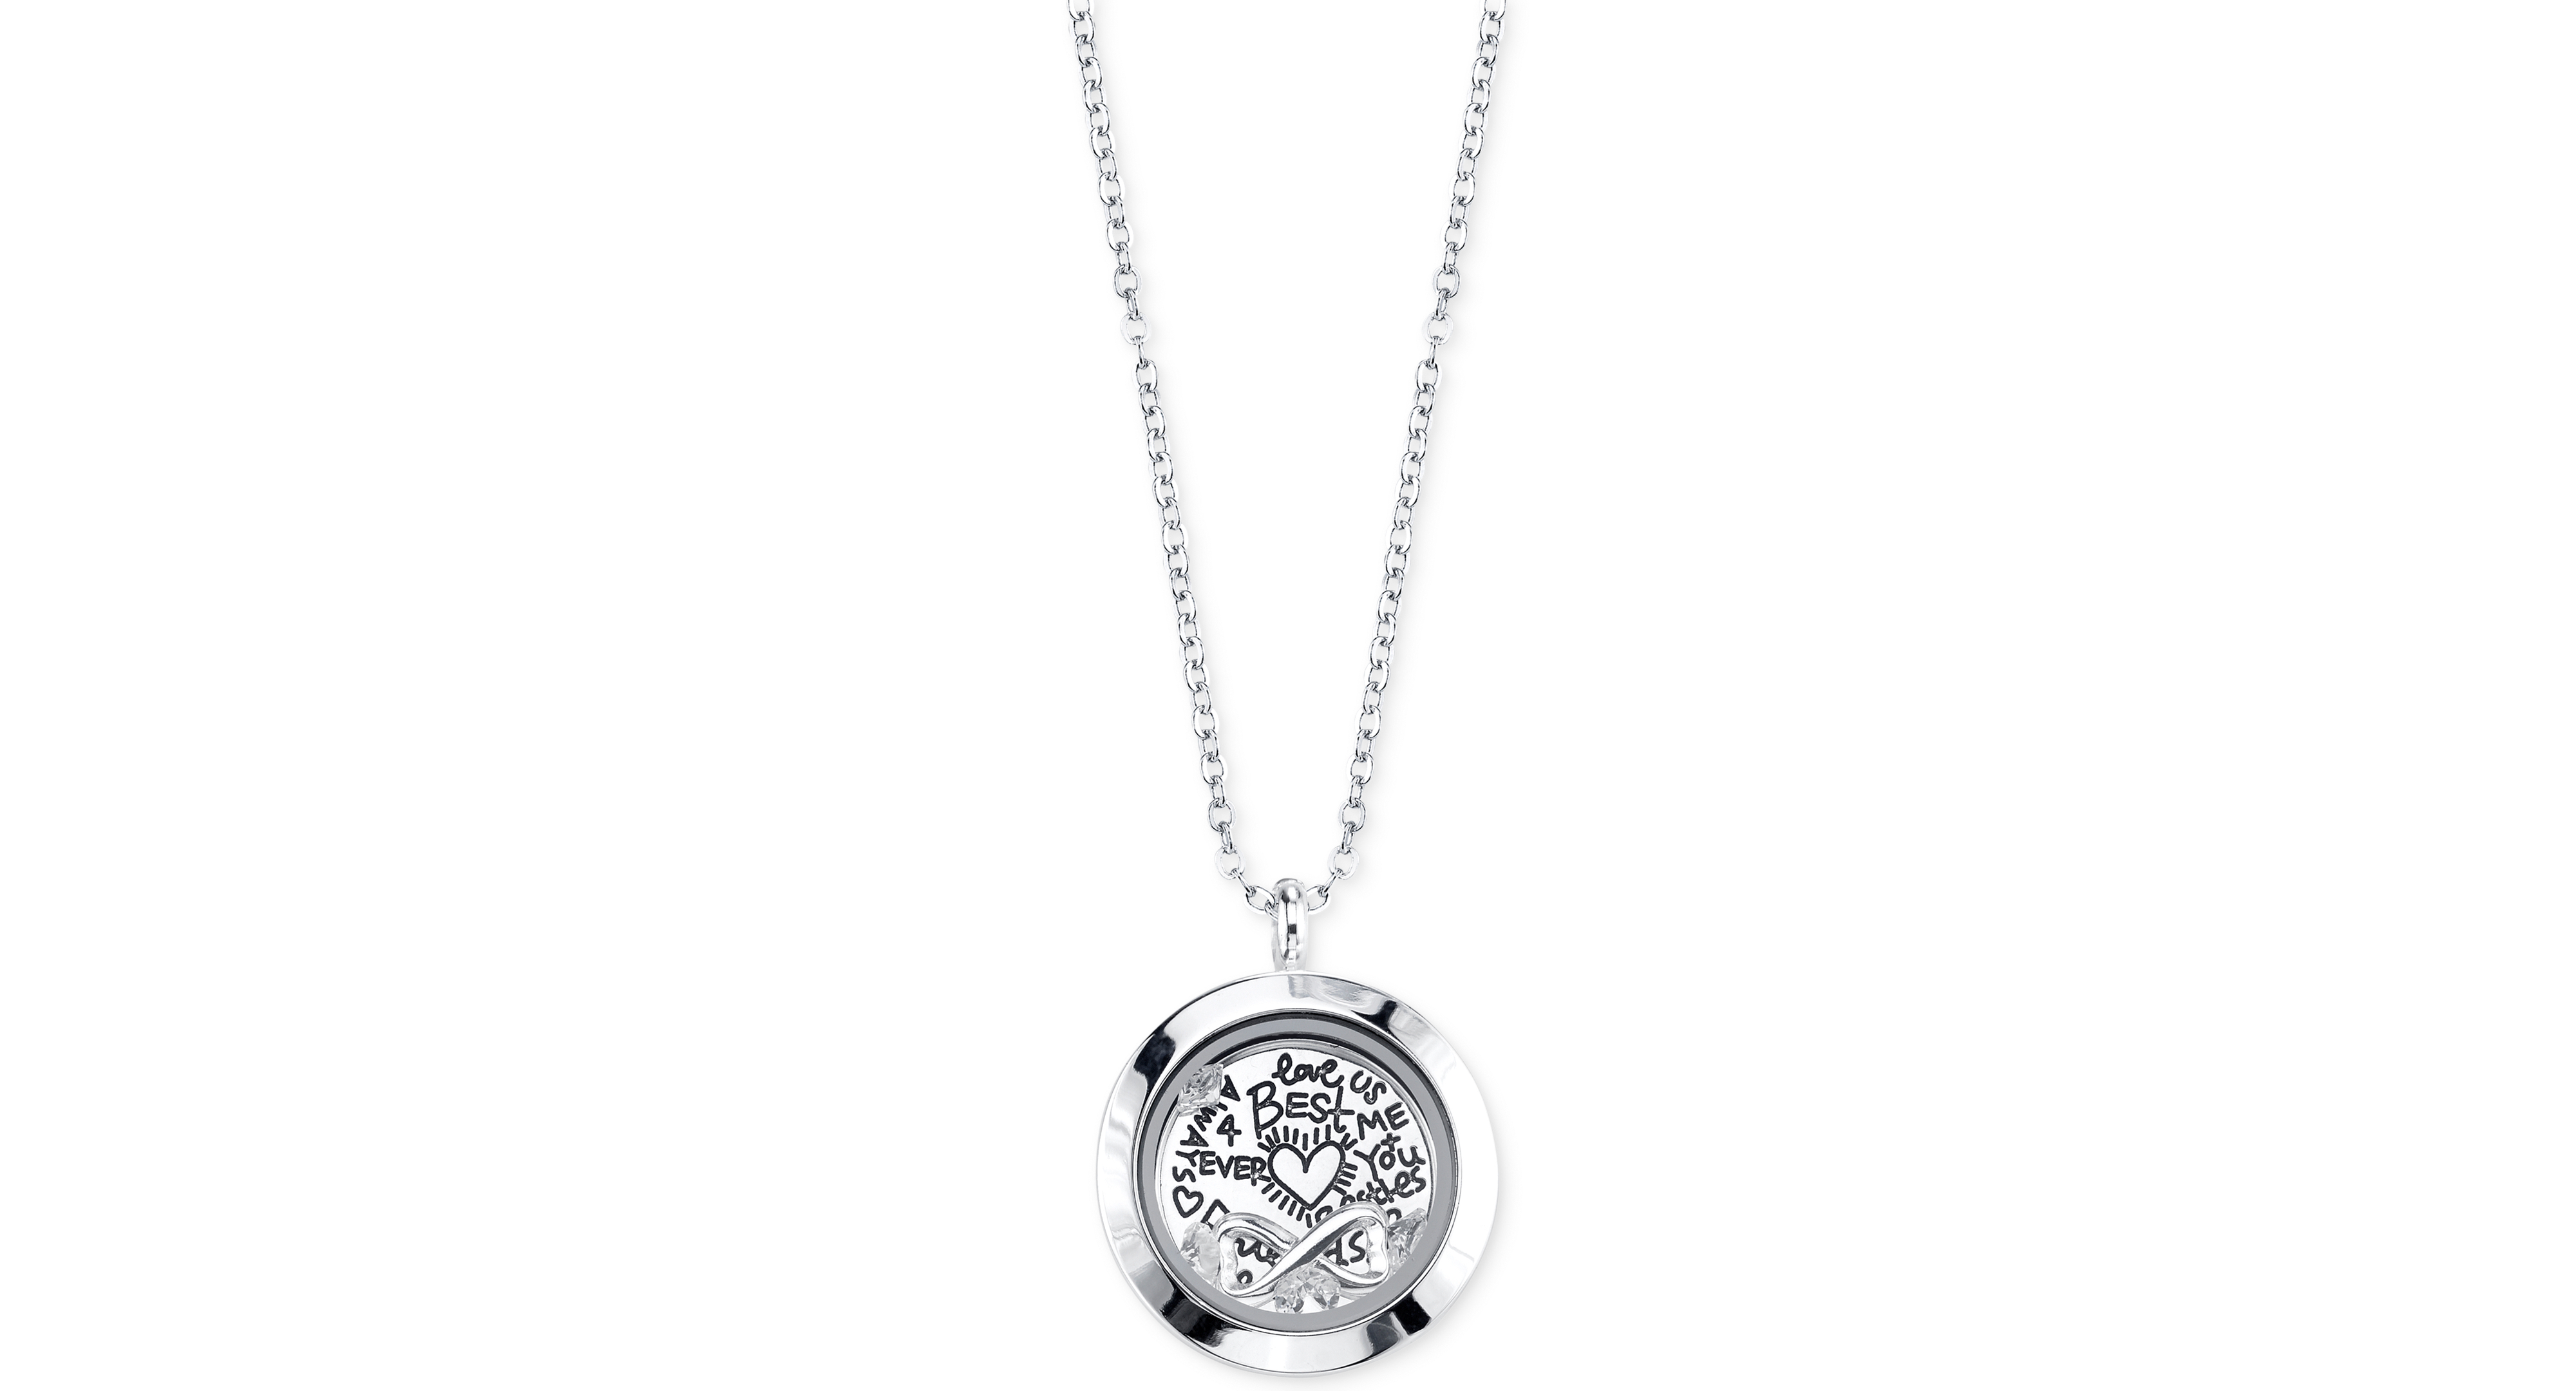 Unwritten Best Friends Forever and Crystal Interchangeable Locket Necklace in Silver-Plated Stainless Steel